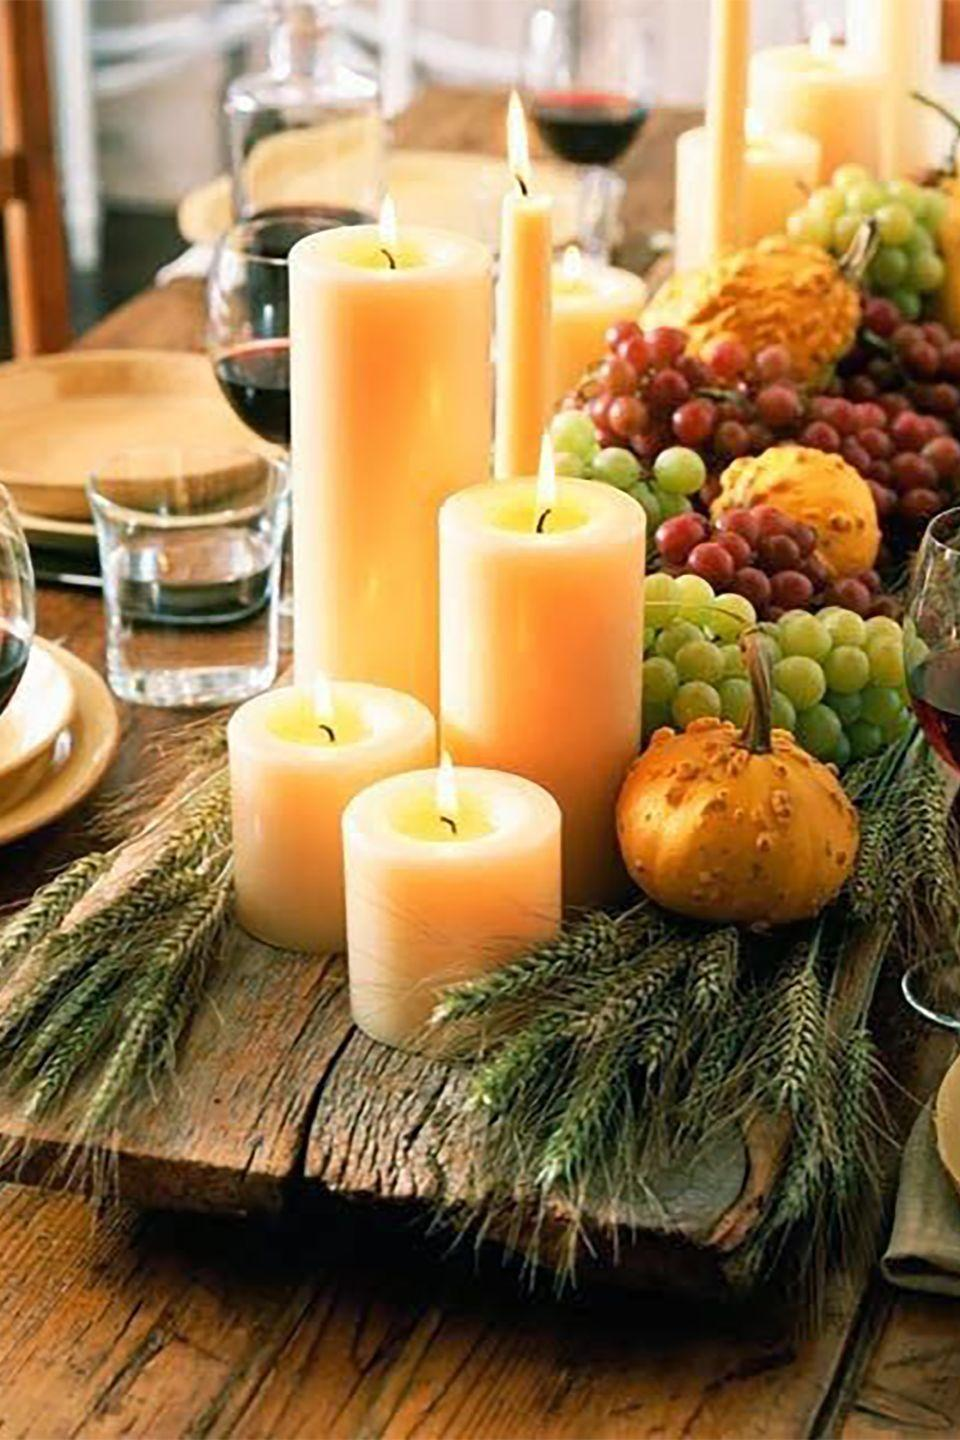 """<p>Arrange a large group of scentless white pillar candles in various heights on a large wooden tray in the center of your dining table. Add wheat stalks, fresh fruit, and gourds for an extra festive display.</p><p><a class=""""link rapid-noclick-resp"""" href=""""https://www.amazon.com/Bolsius-Pack-White-Pillar-Candles/dp/B004U3LZKM/ref=sr_1_9?tag=syn-yahoo-20&ascsubtag=%5Bartid%7C10050.g.1371%5Bsrc%7Cyahoo-us"""" rel=""""nofollow noopener"""" target=""""_blank"""" data-ylk=""""slk:SHOP CANDLES"""">SHOP CANDLES</a></p>"""